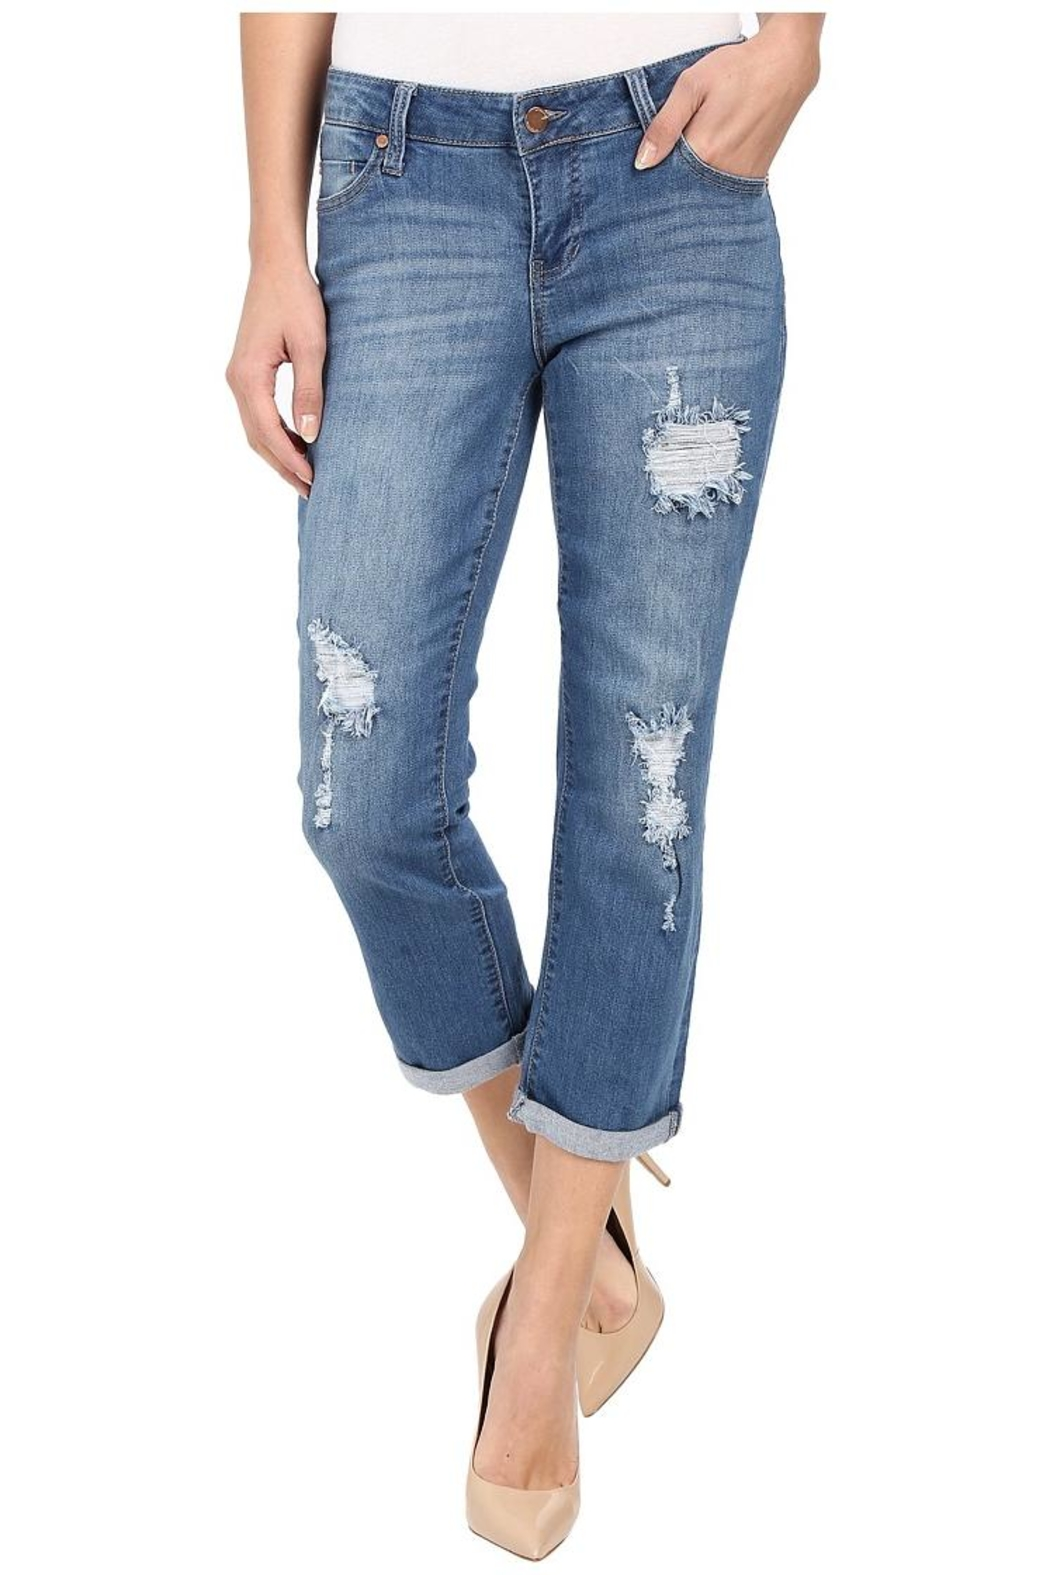 Liverpool Jeans Company Distressed Boyfriend Jeans - Main Image